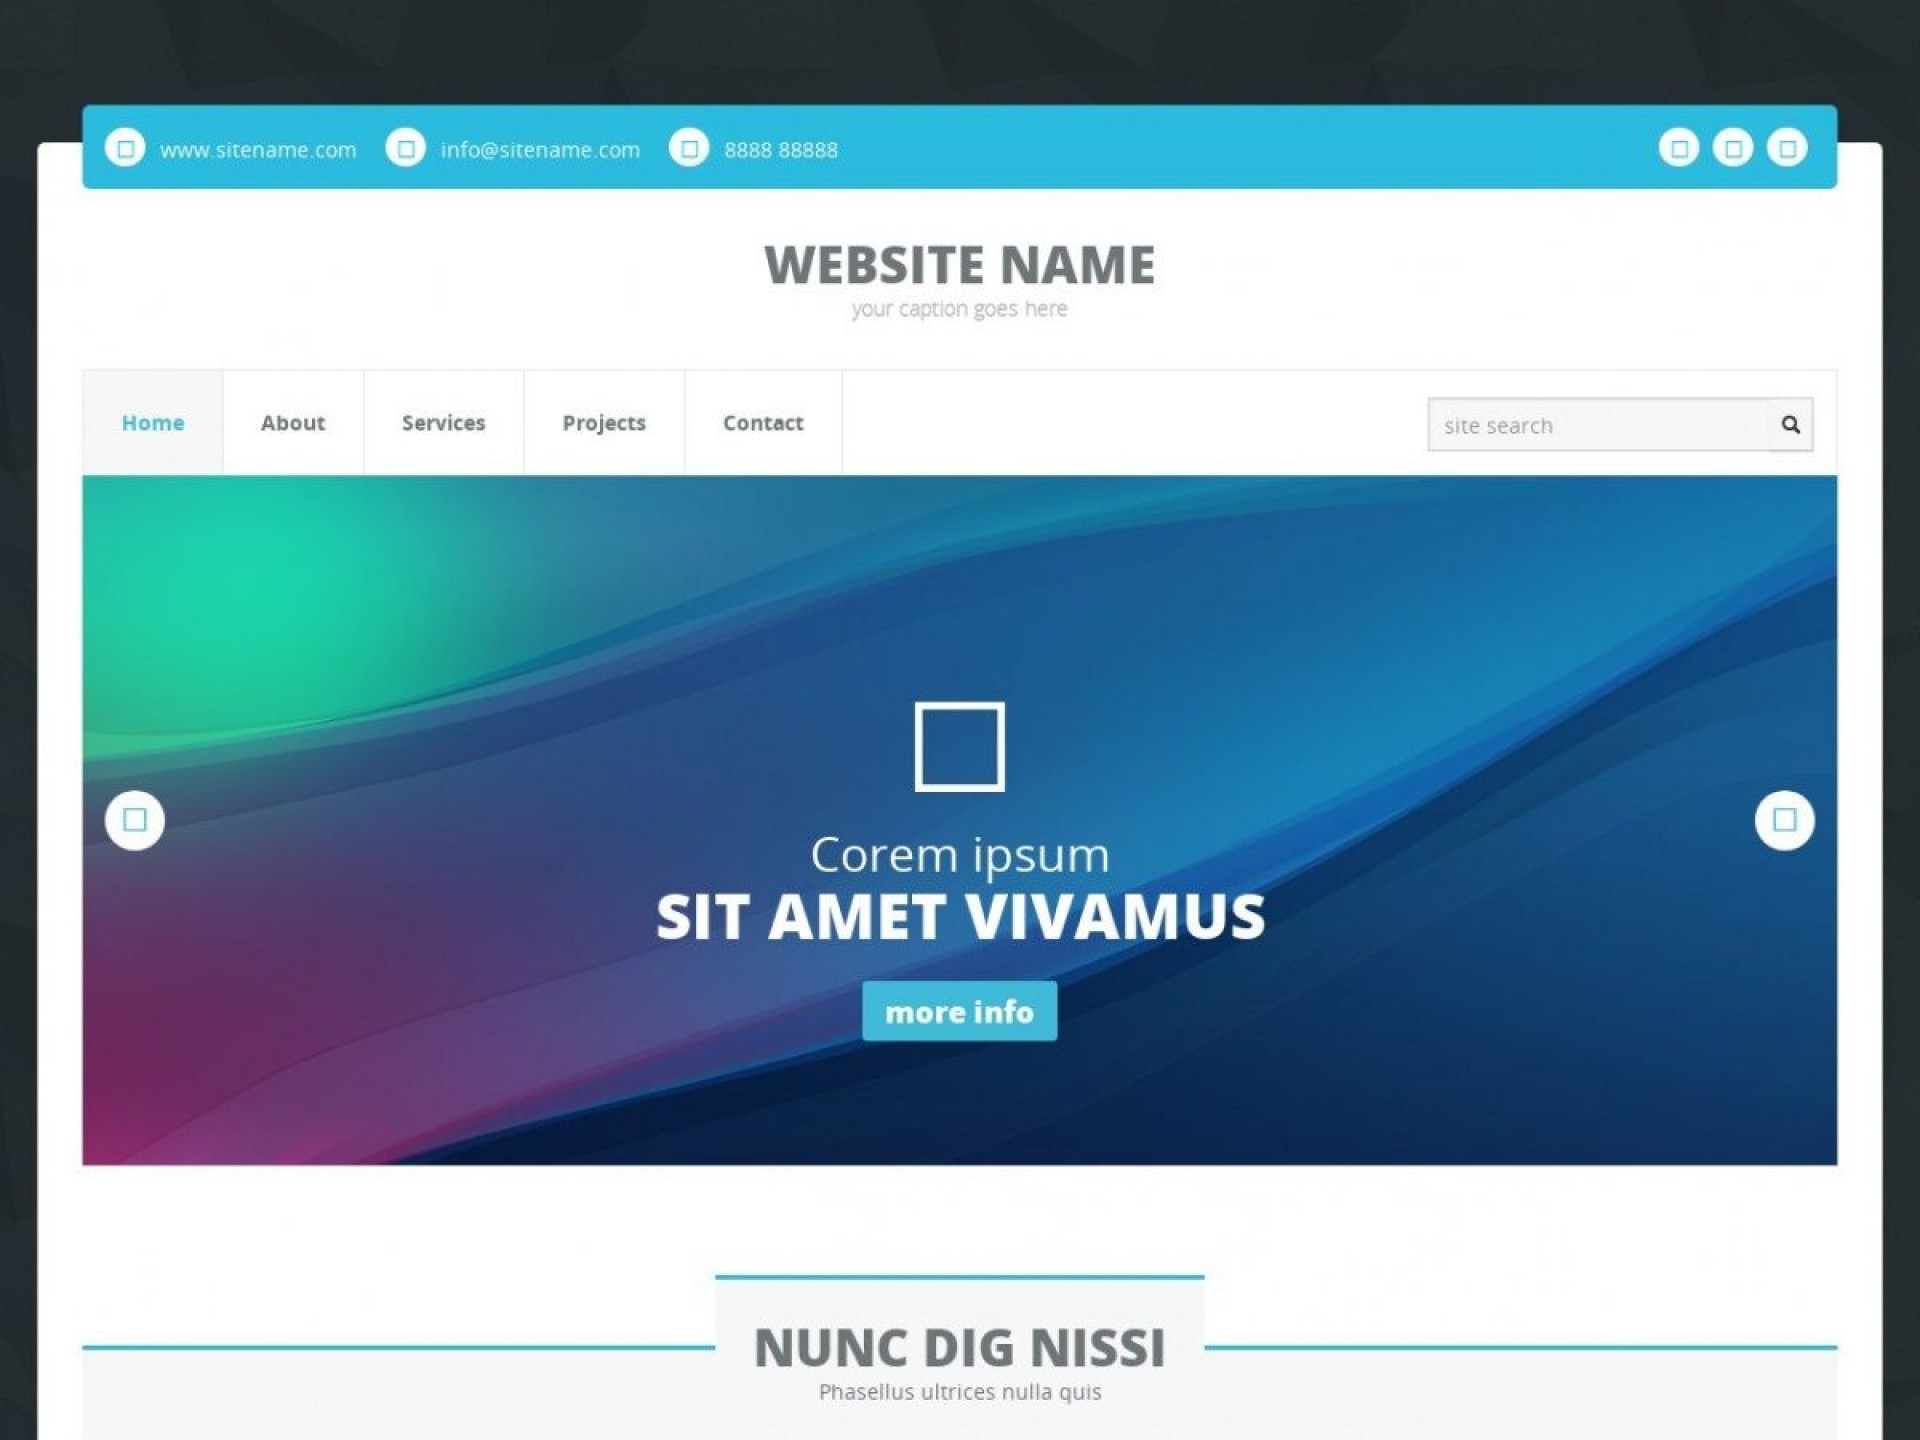 006 Best Website Template Html Cs Free Download Photo  Registration Page With Javascript Jquery Responsive Student Form1920